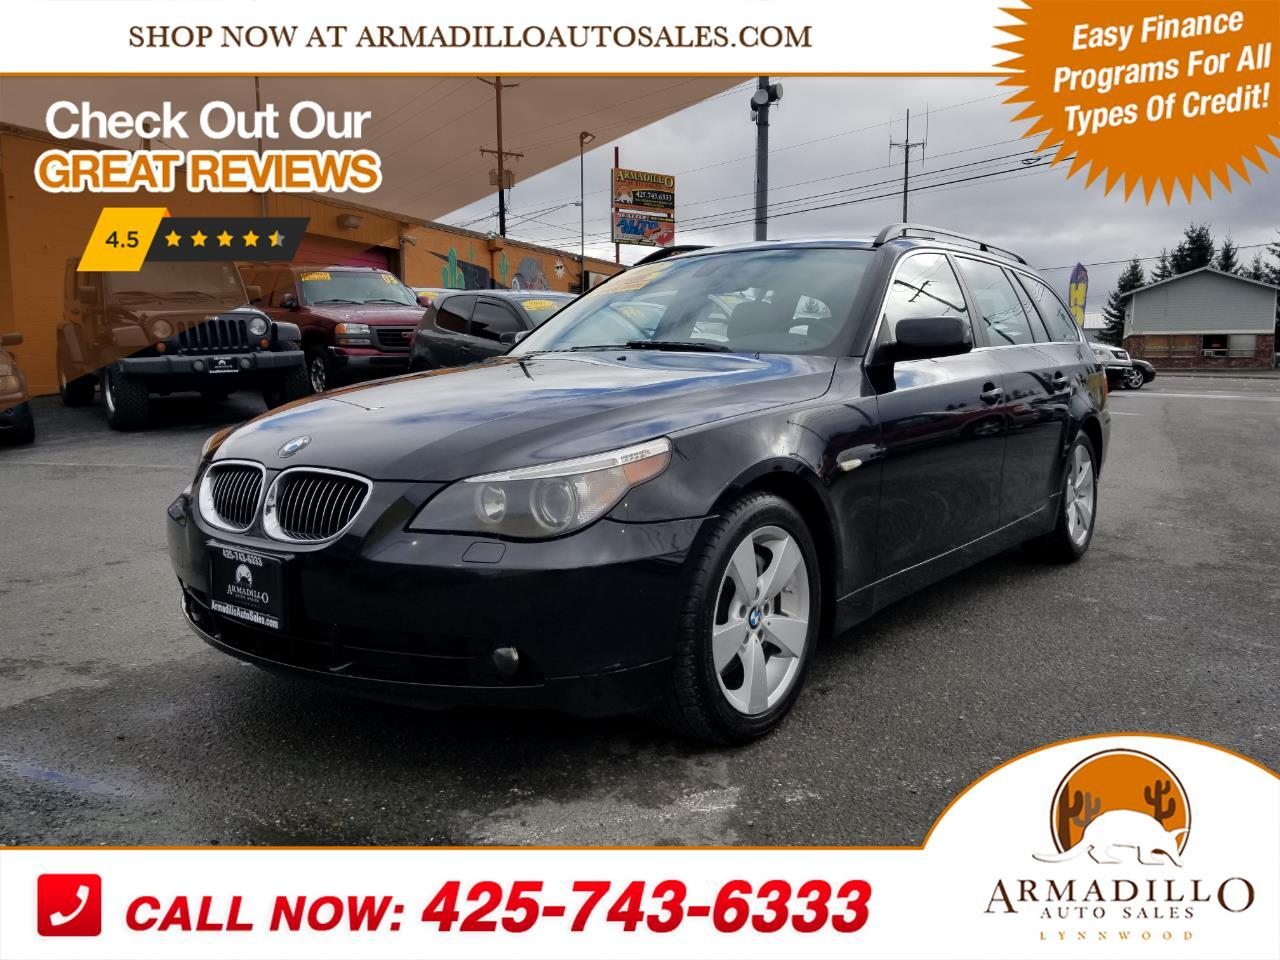 2007 BMW 5-Series Sport Wagon 530xi